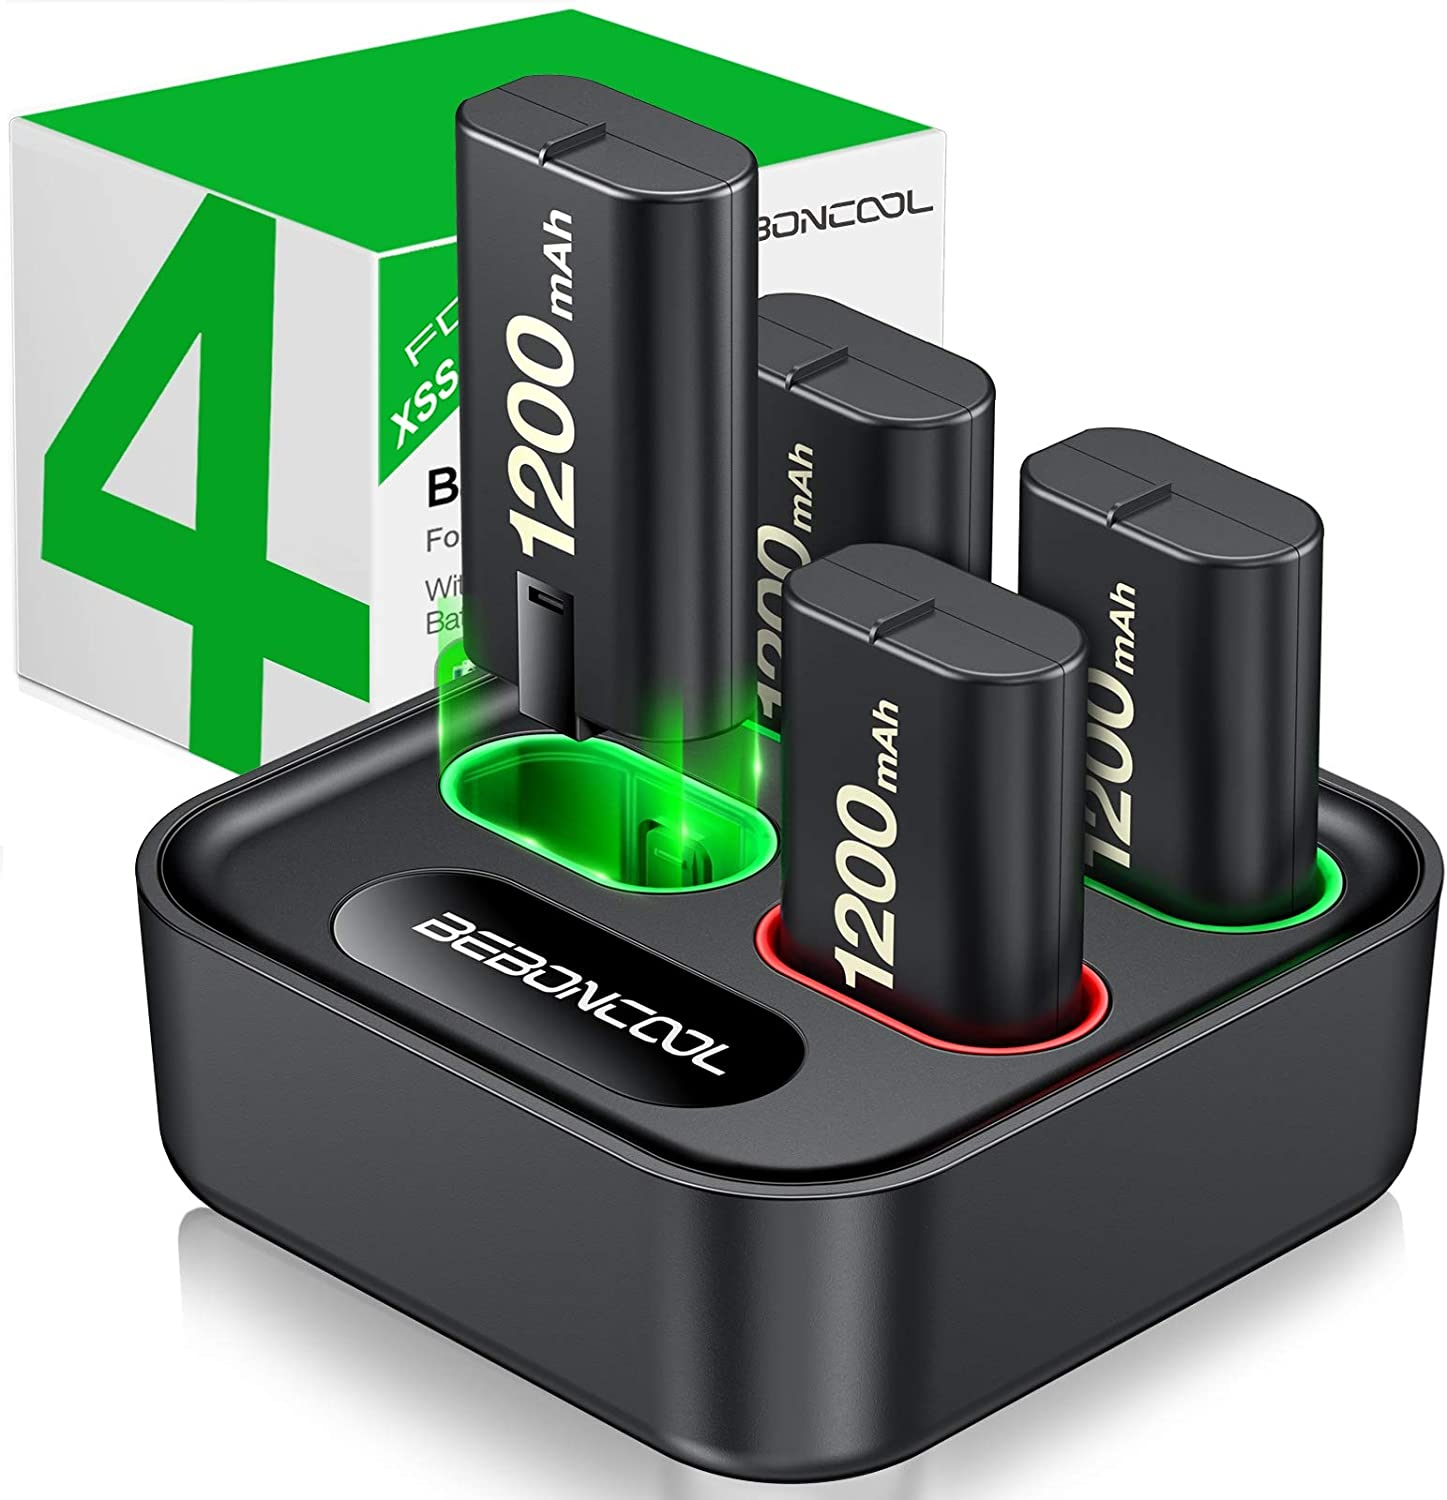 Charger for Xbox One Controller Battery Pack, with 4 x 1200mAh Rechargeable Xbox One Battery Charger Charging Kit for Xbox One Xbox Series X|S, Xbox One X/Xbox One S/Xbox One Elite Controllers